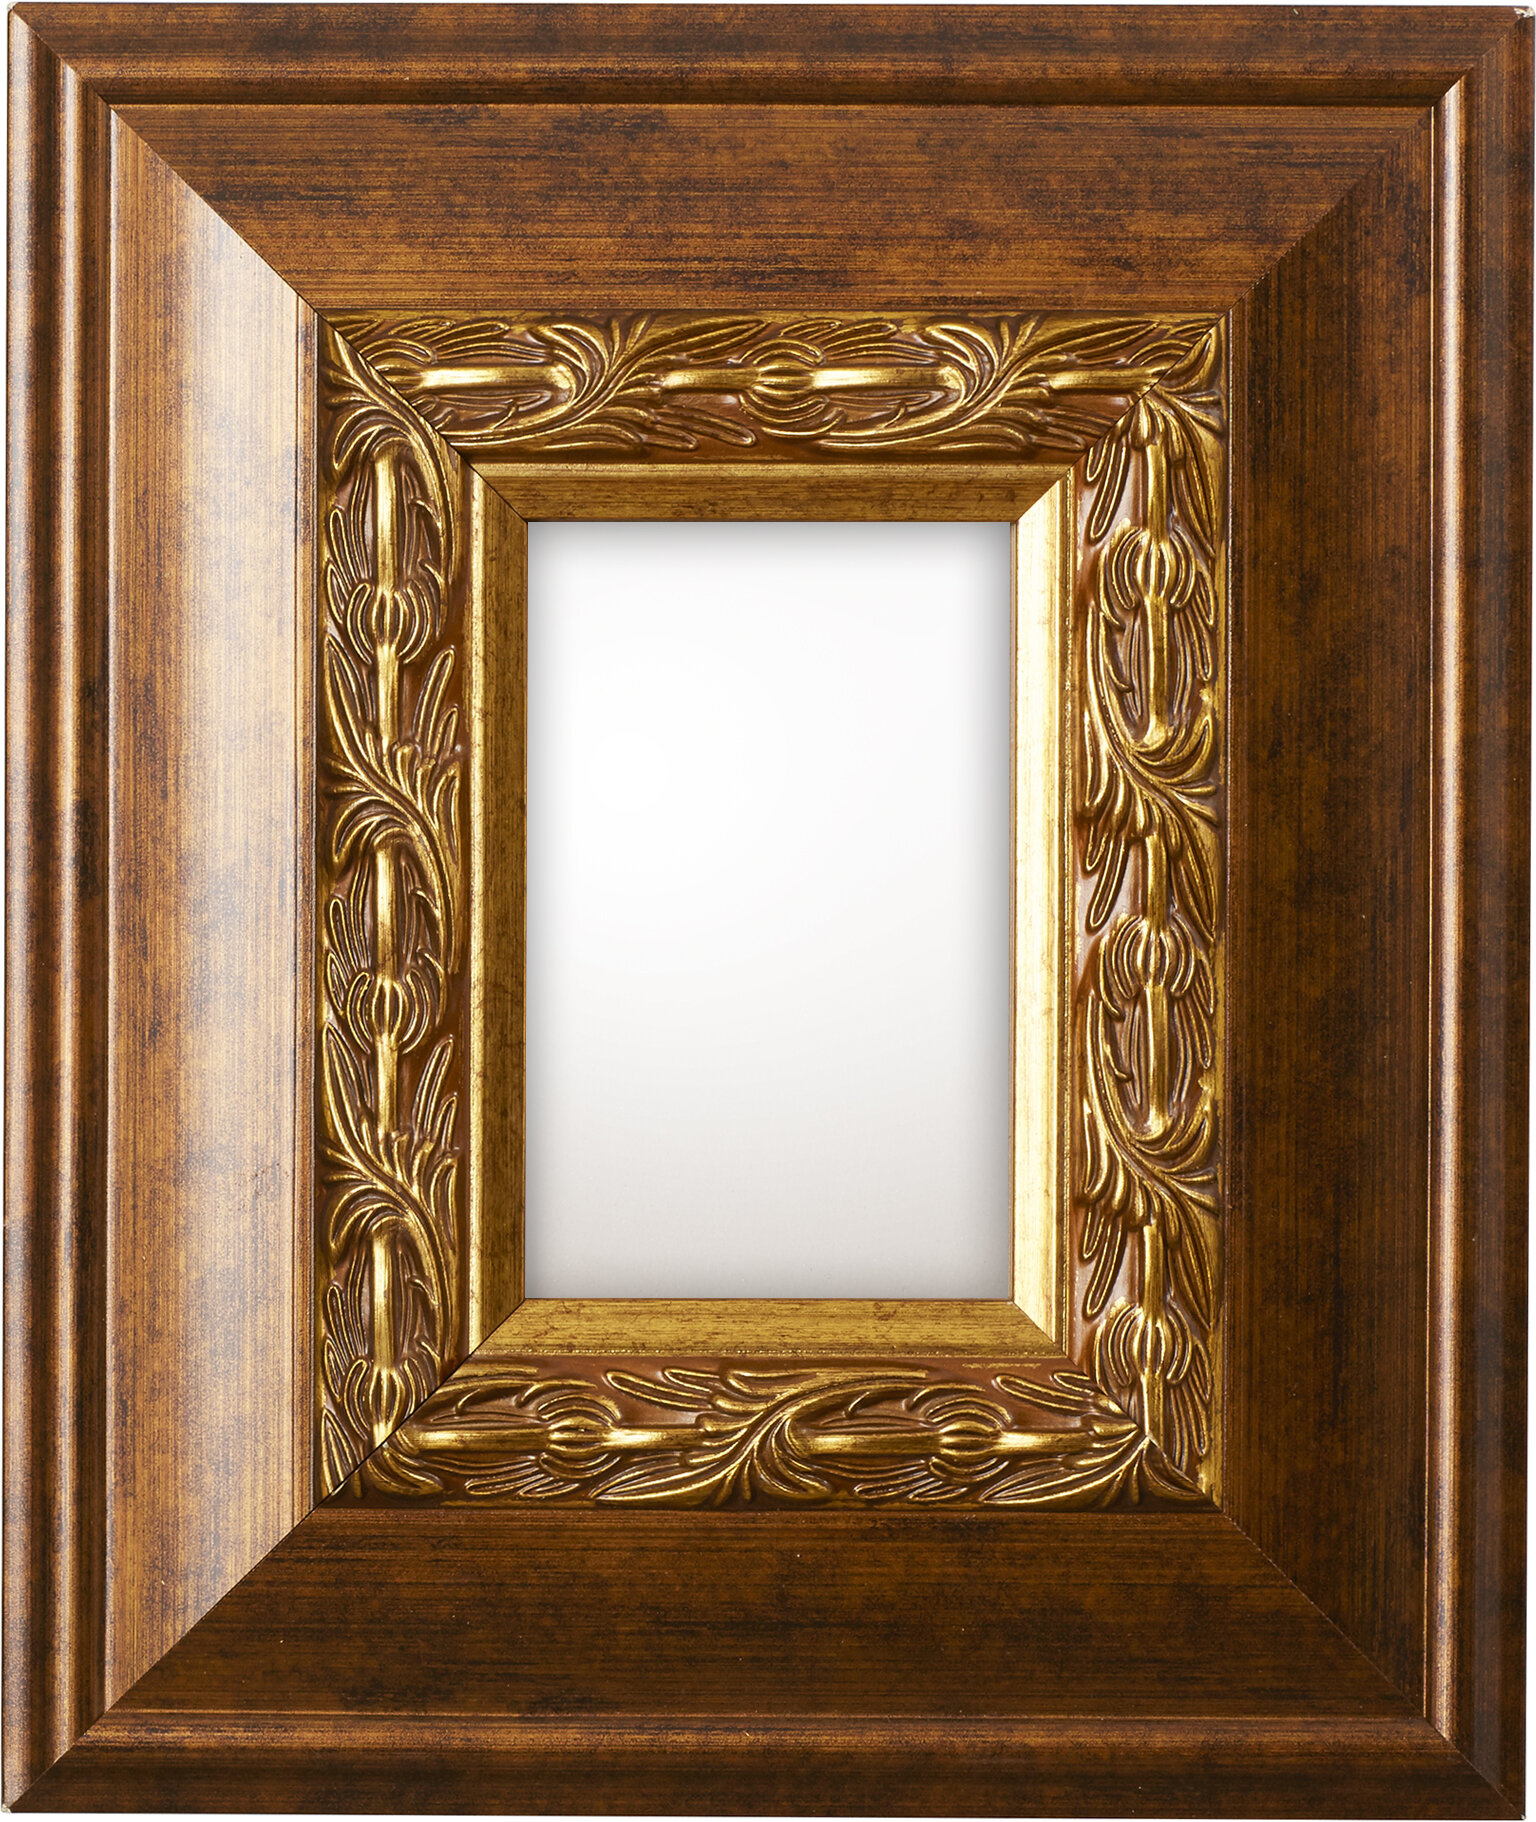 Astoria grand 35 wide ornate picture frame reviews wayfair jeuxipadfo Images